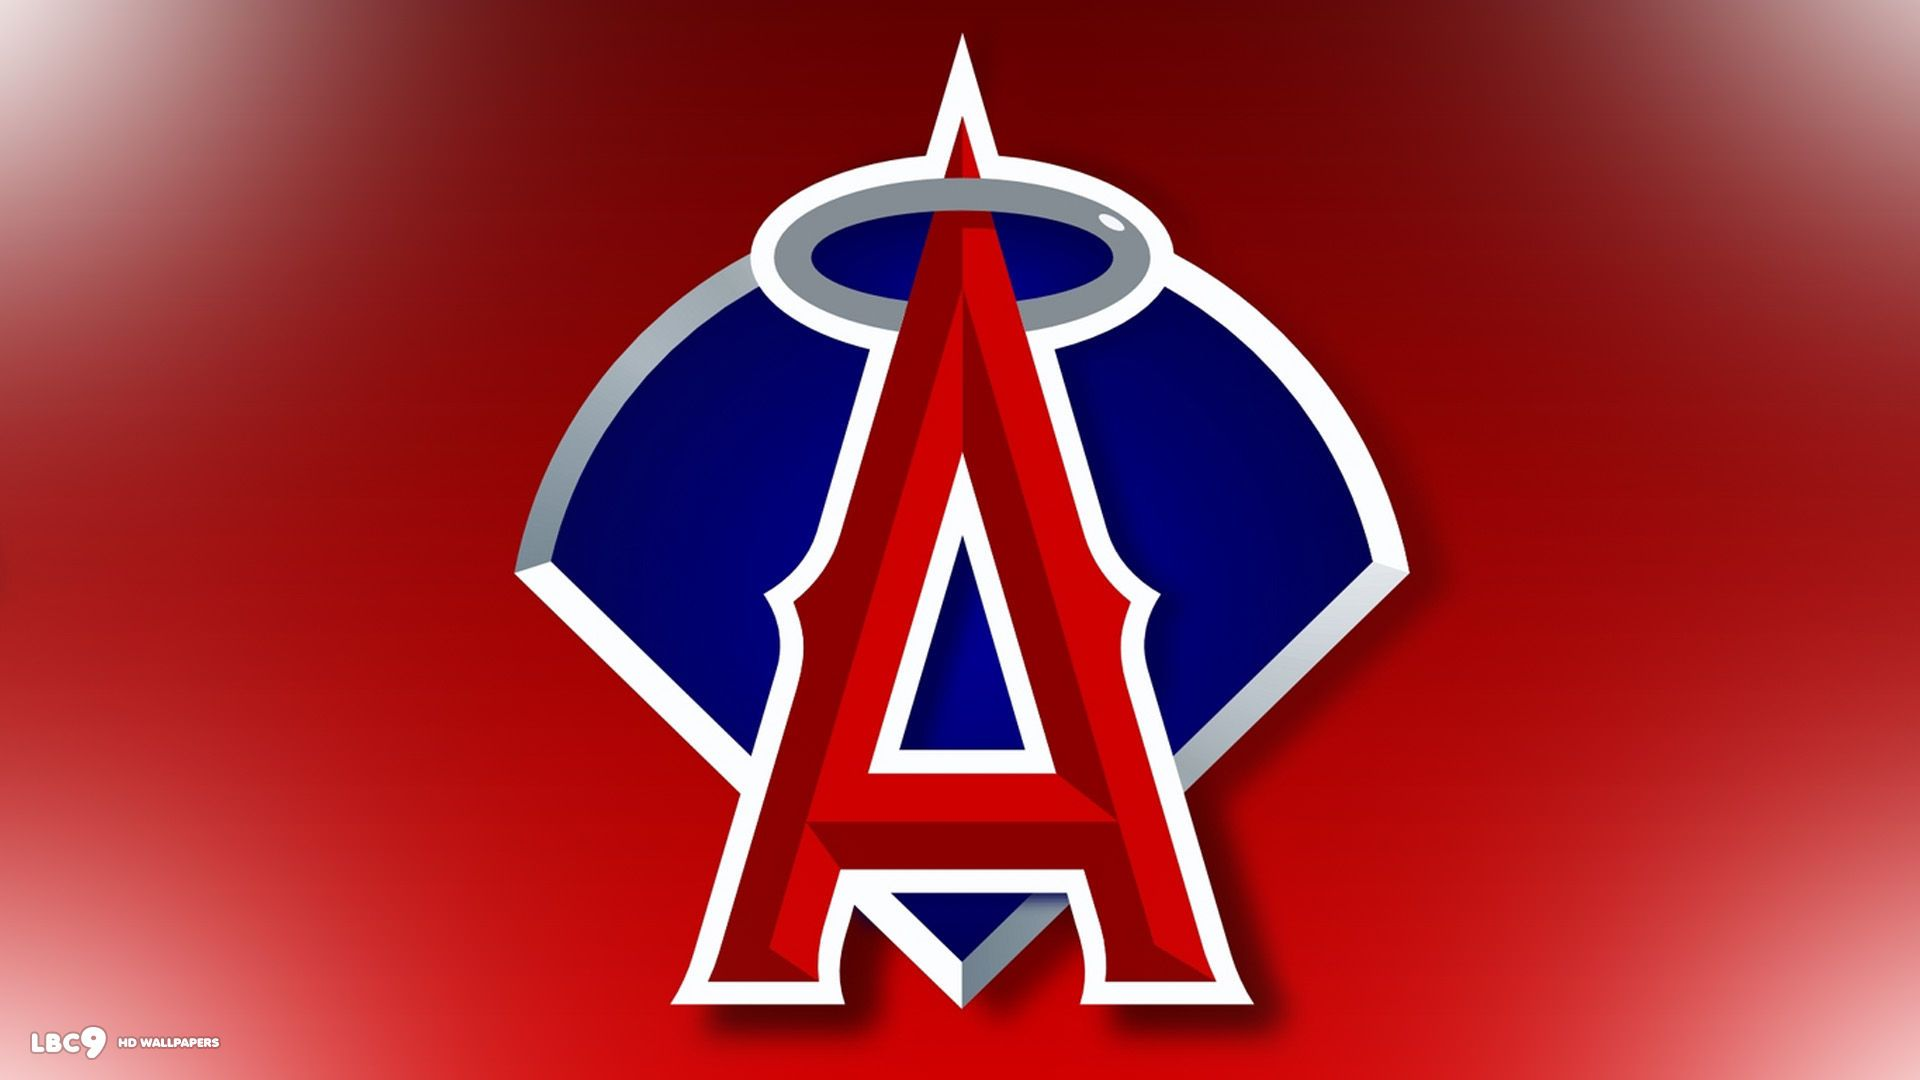 Los Angeles Angels Wallpapers Hd Anaheim Angels Los Angeles Angels Angels Baseball